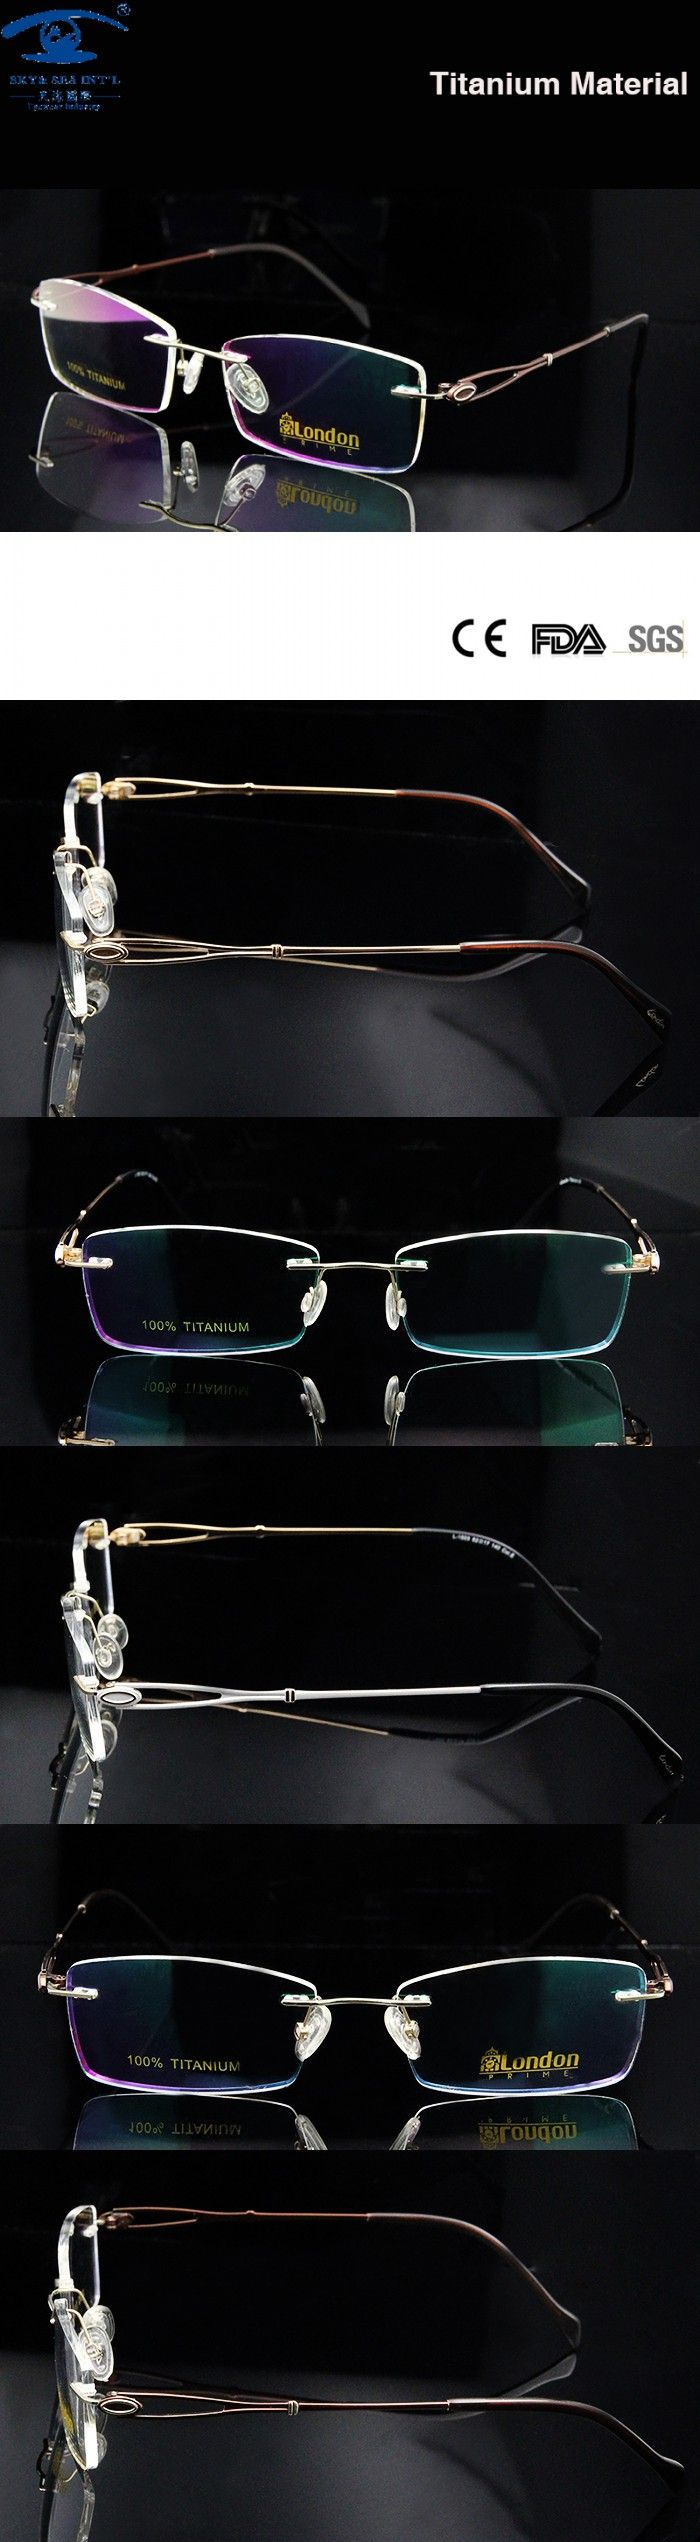 Attractive Featherweight Glasses Frames Image Collection - Framed ...